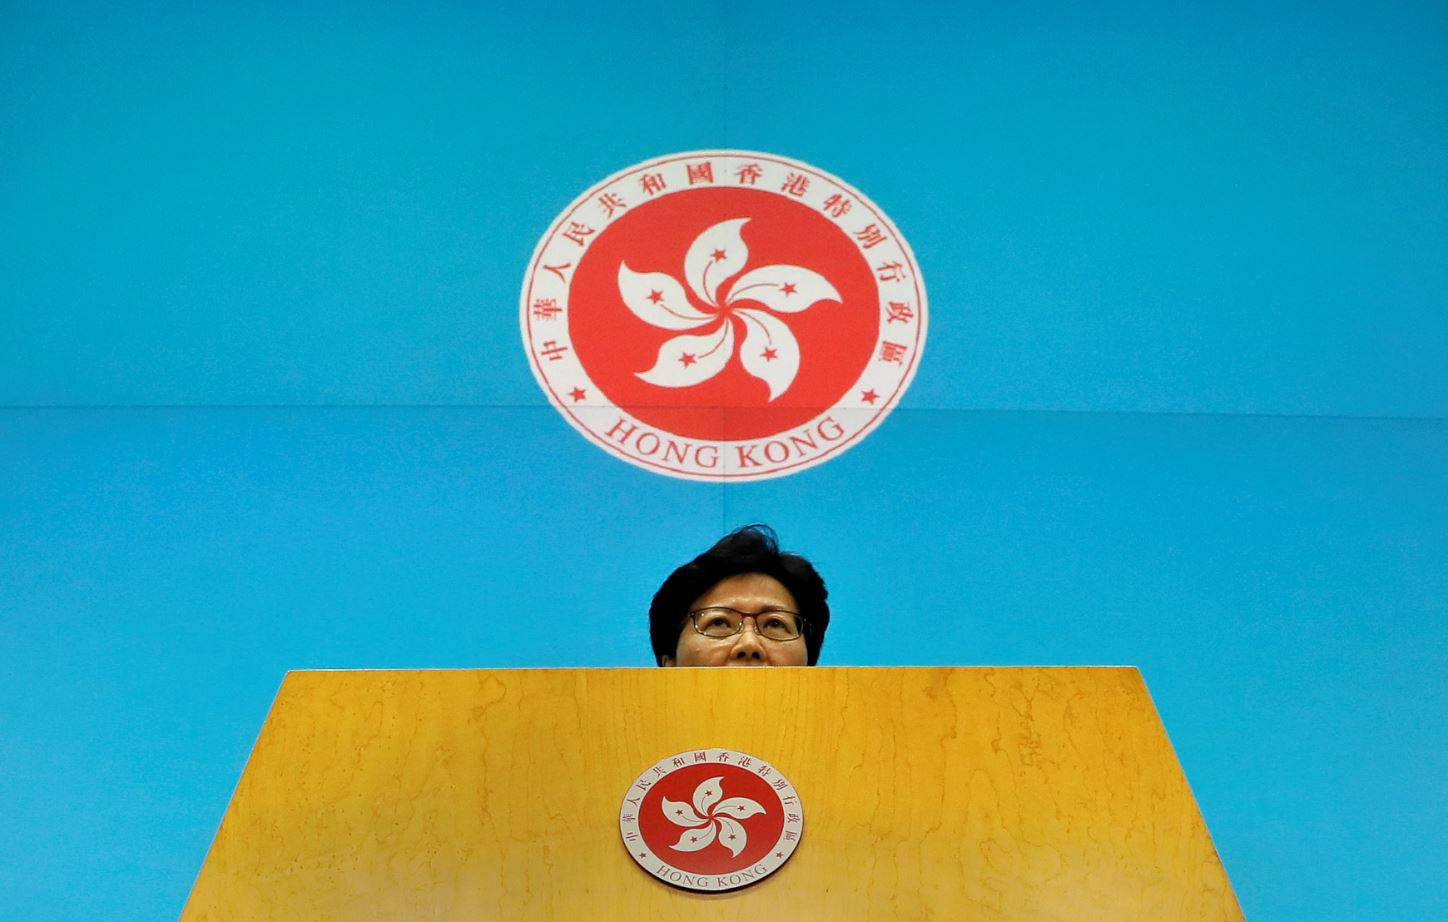 Hong Kong Chief Executive Carrie Lam listens to reporters' questions during a press conference at the Legislative Council in Hong Kong, Tuesday, June 18, 2019.